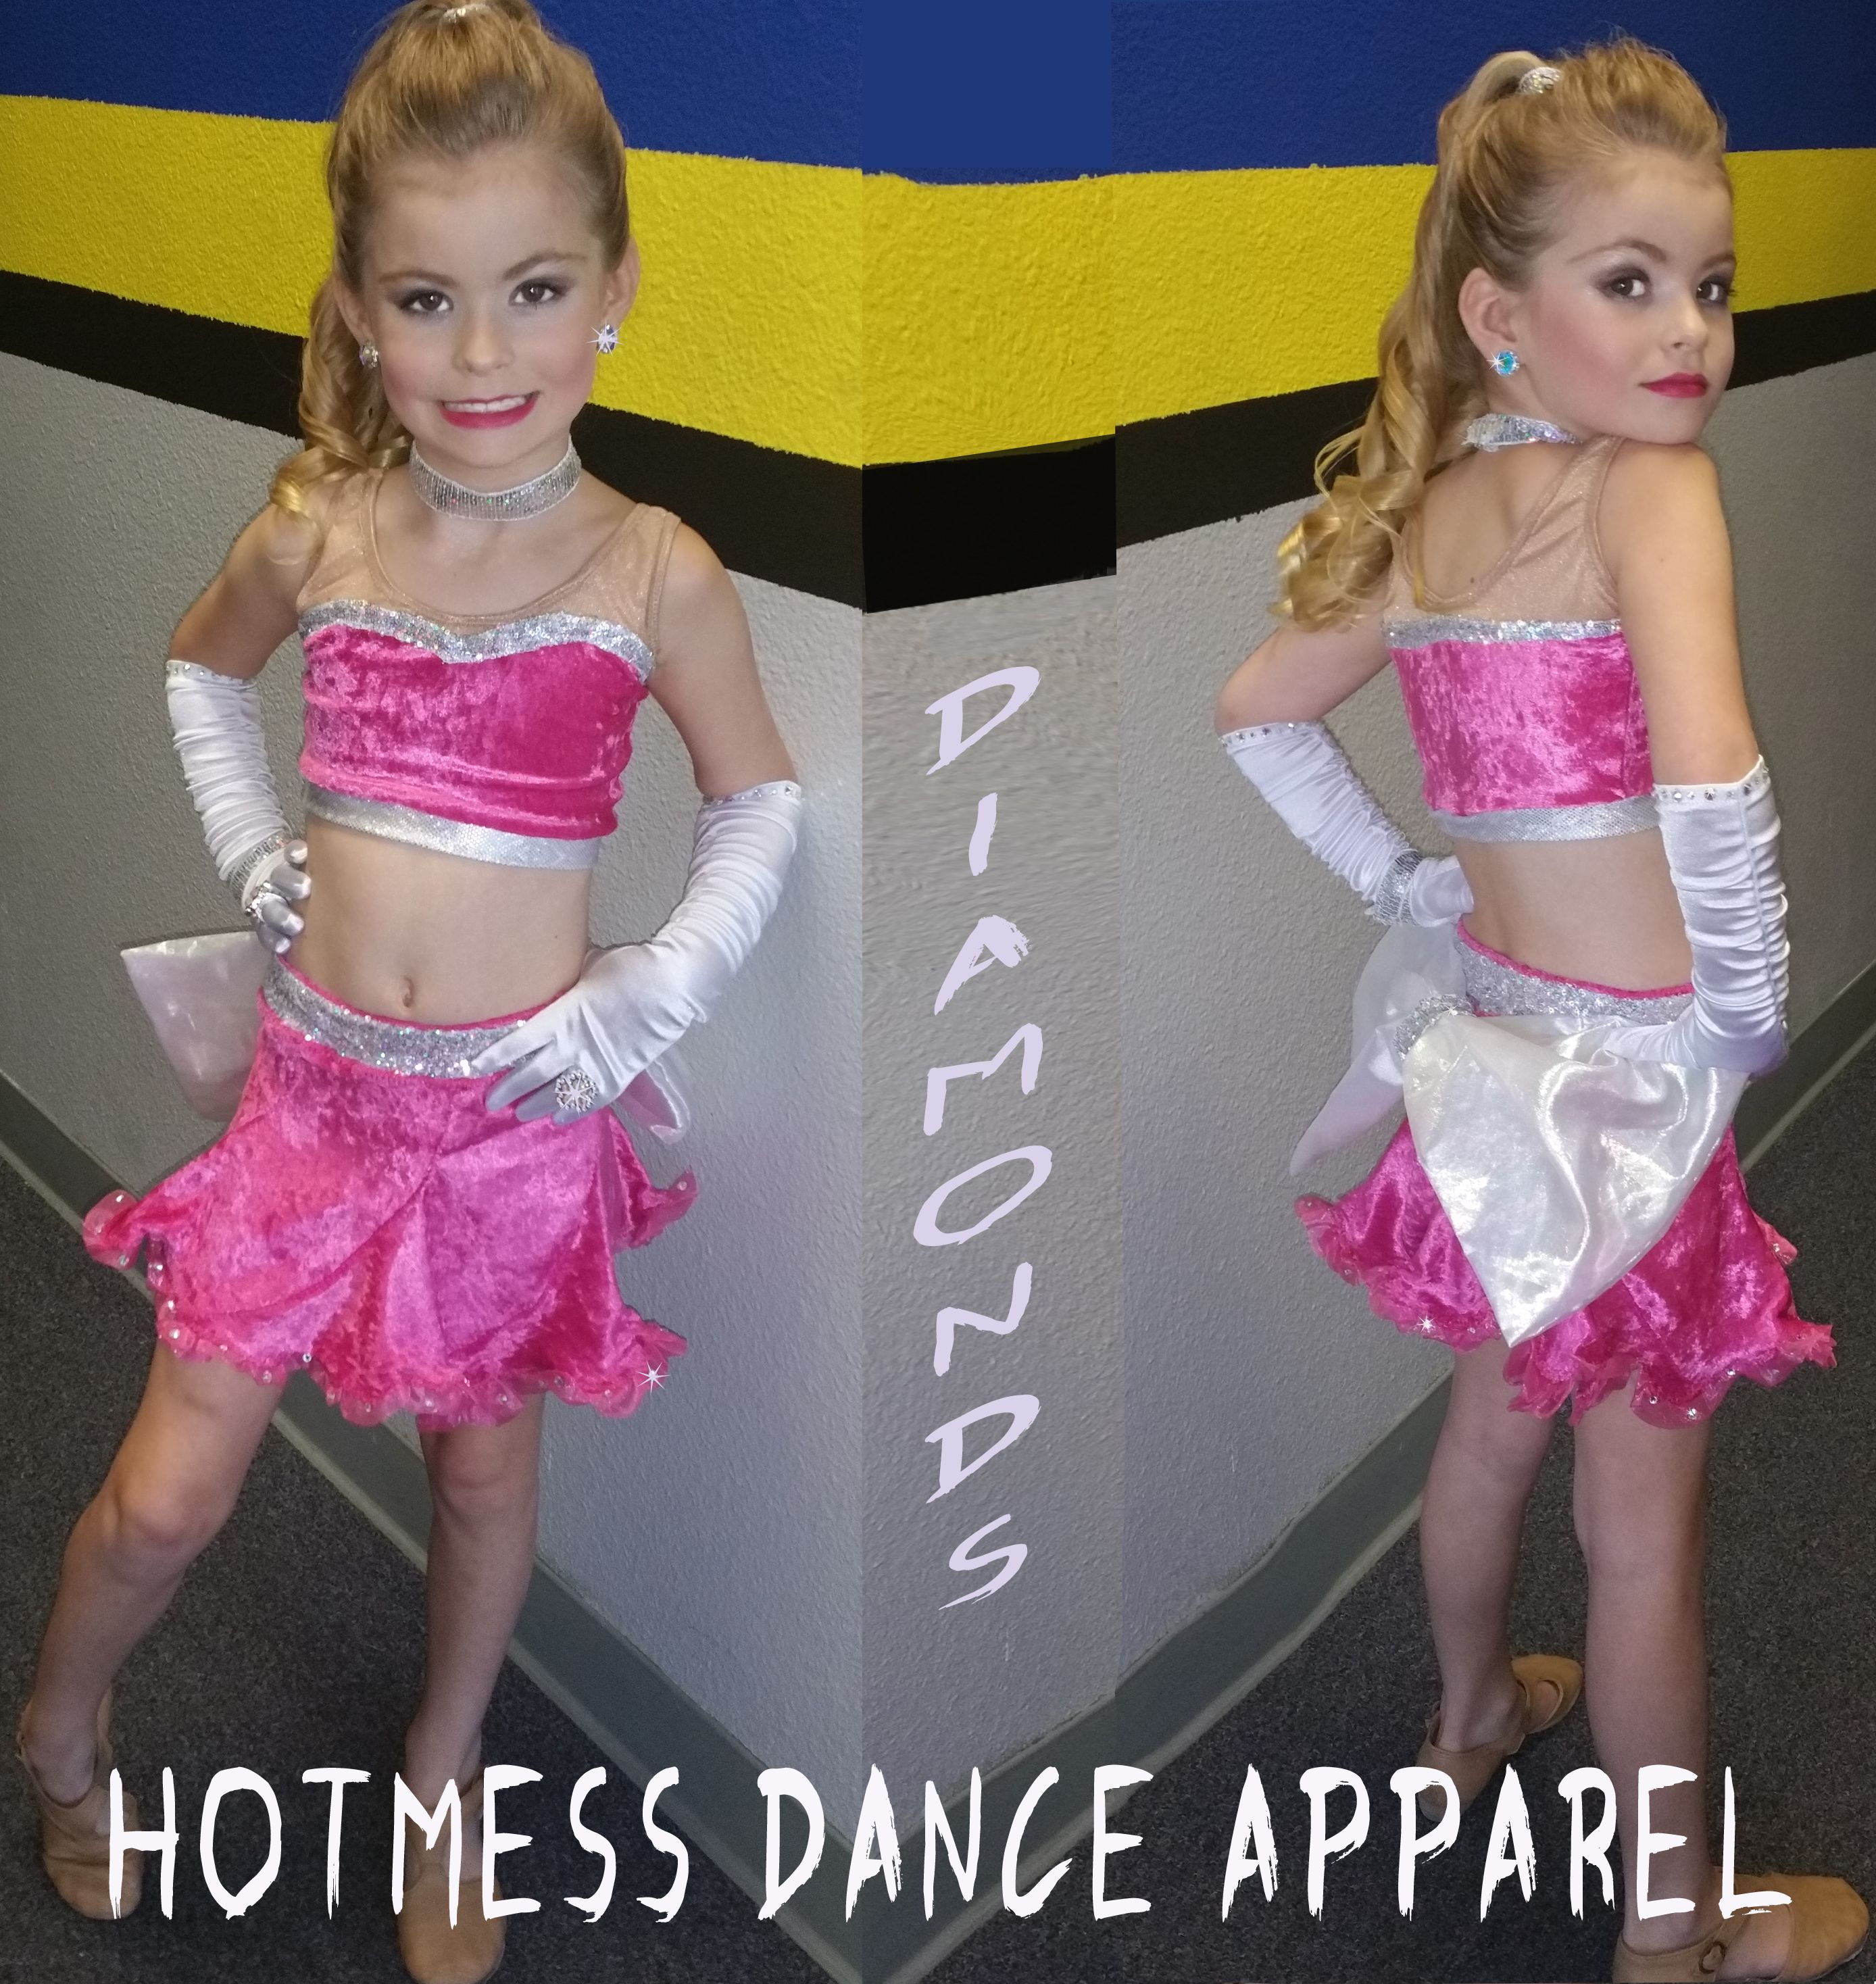 Rhinestones Are A Girl's Best Friend!  Need a great solo outfit? Give us a call: (951) 268-4452